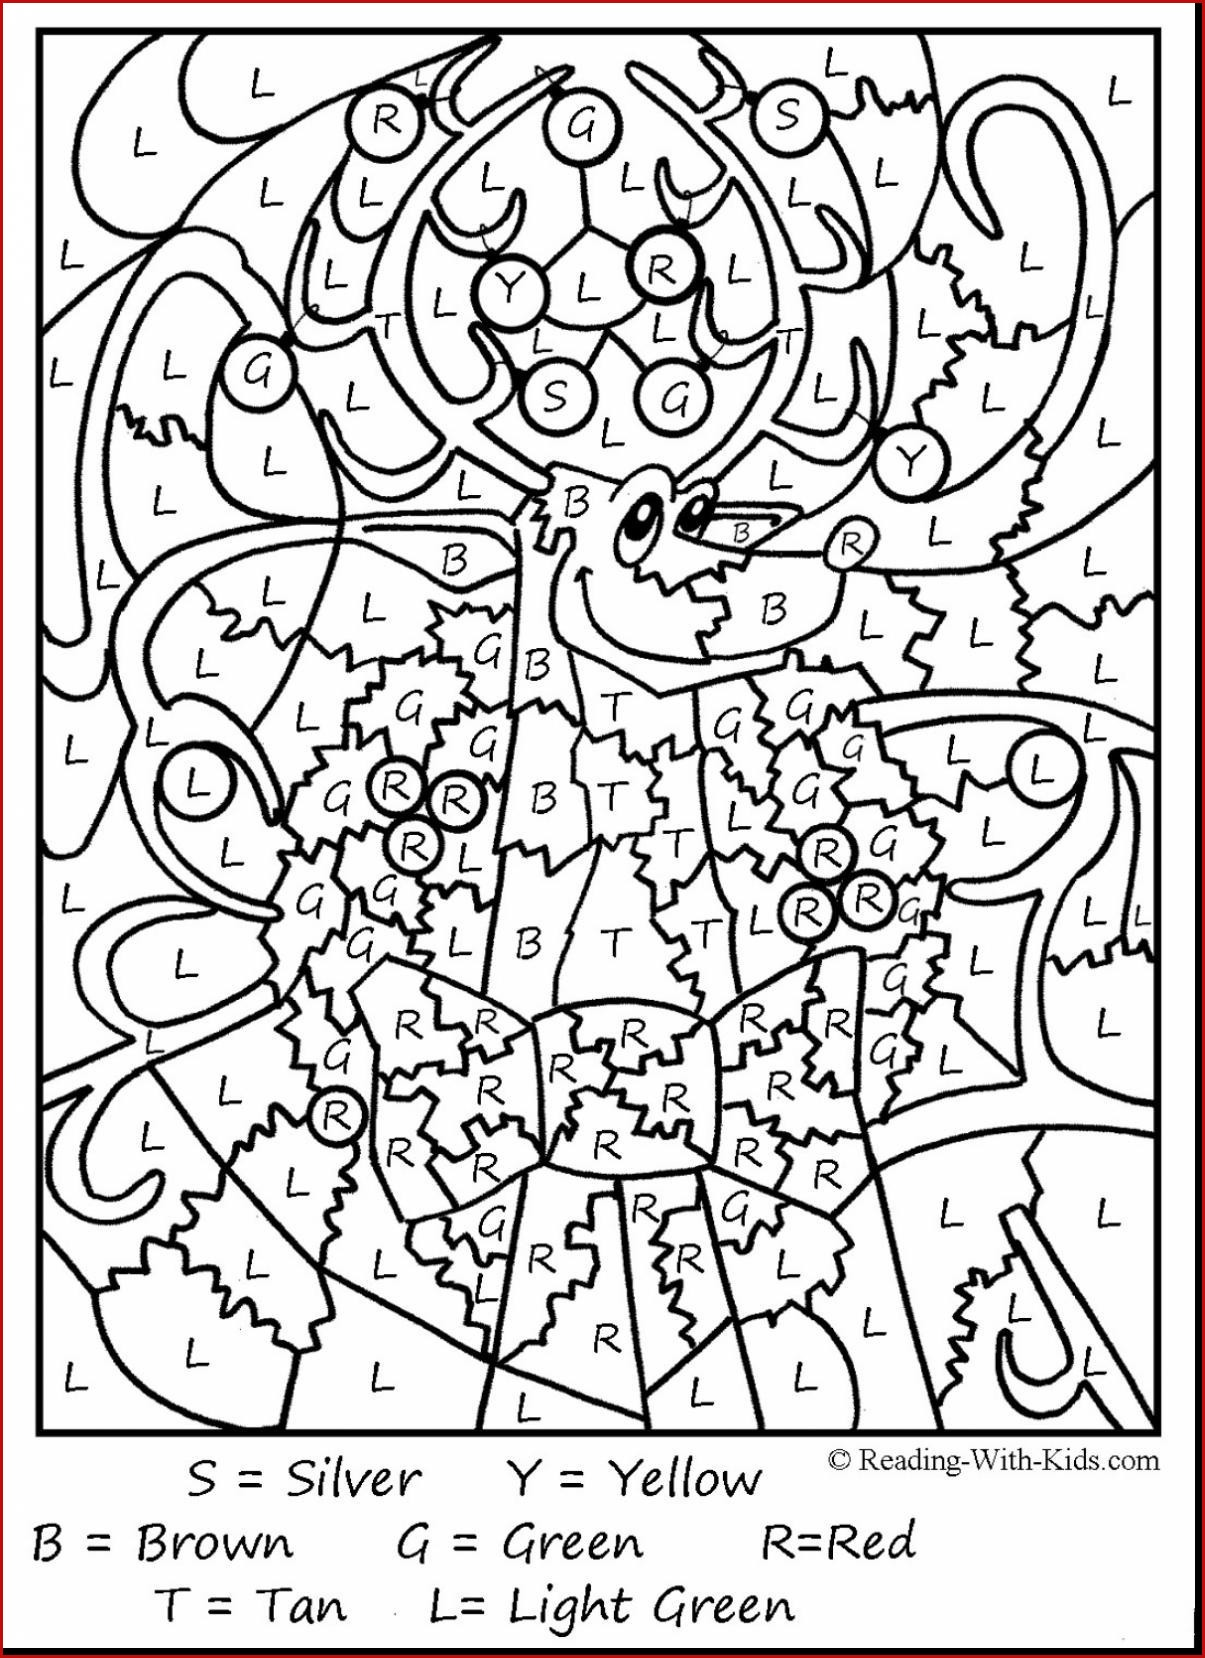 Coloring Ideas : Coloring Ideasation Pages Math Worksheets Of - Free Printable Multiplication Color By Number